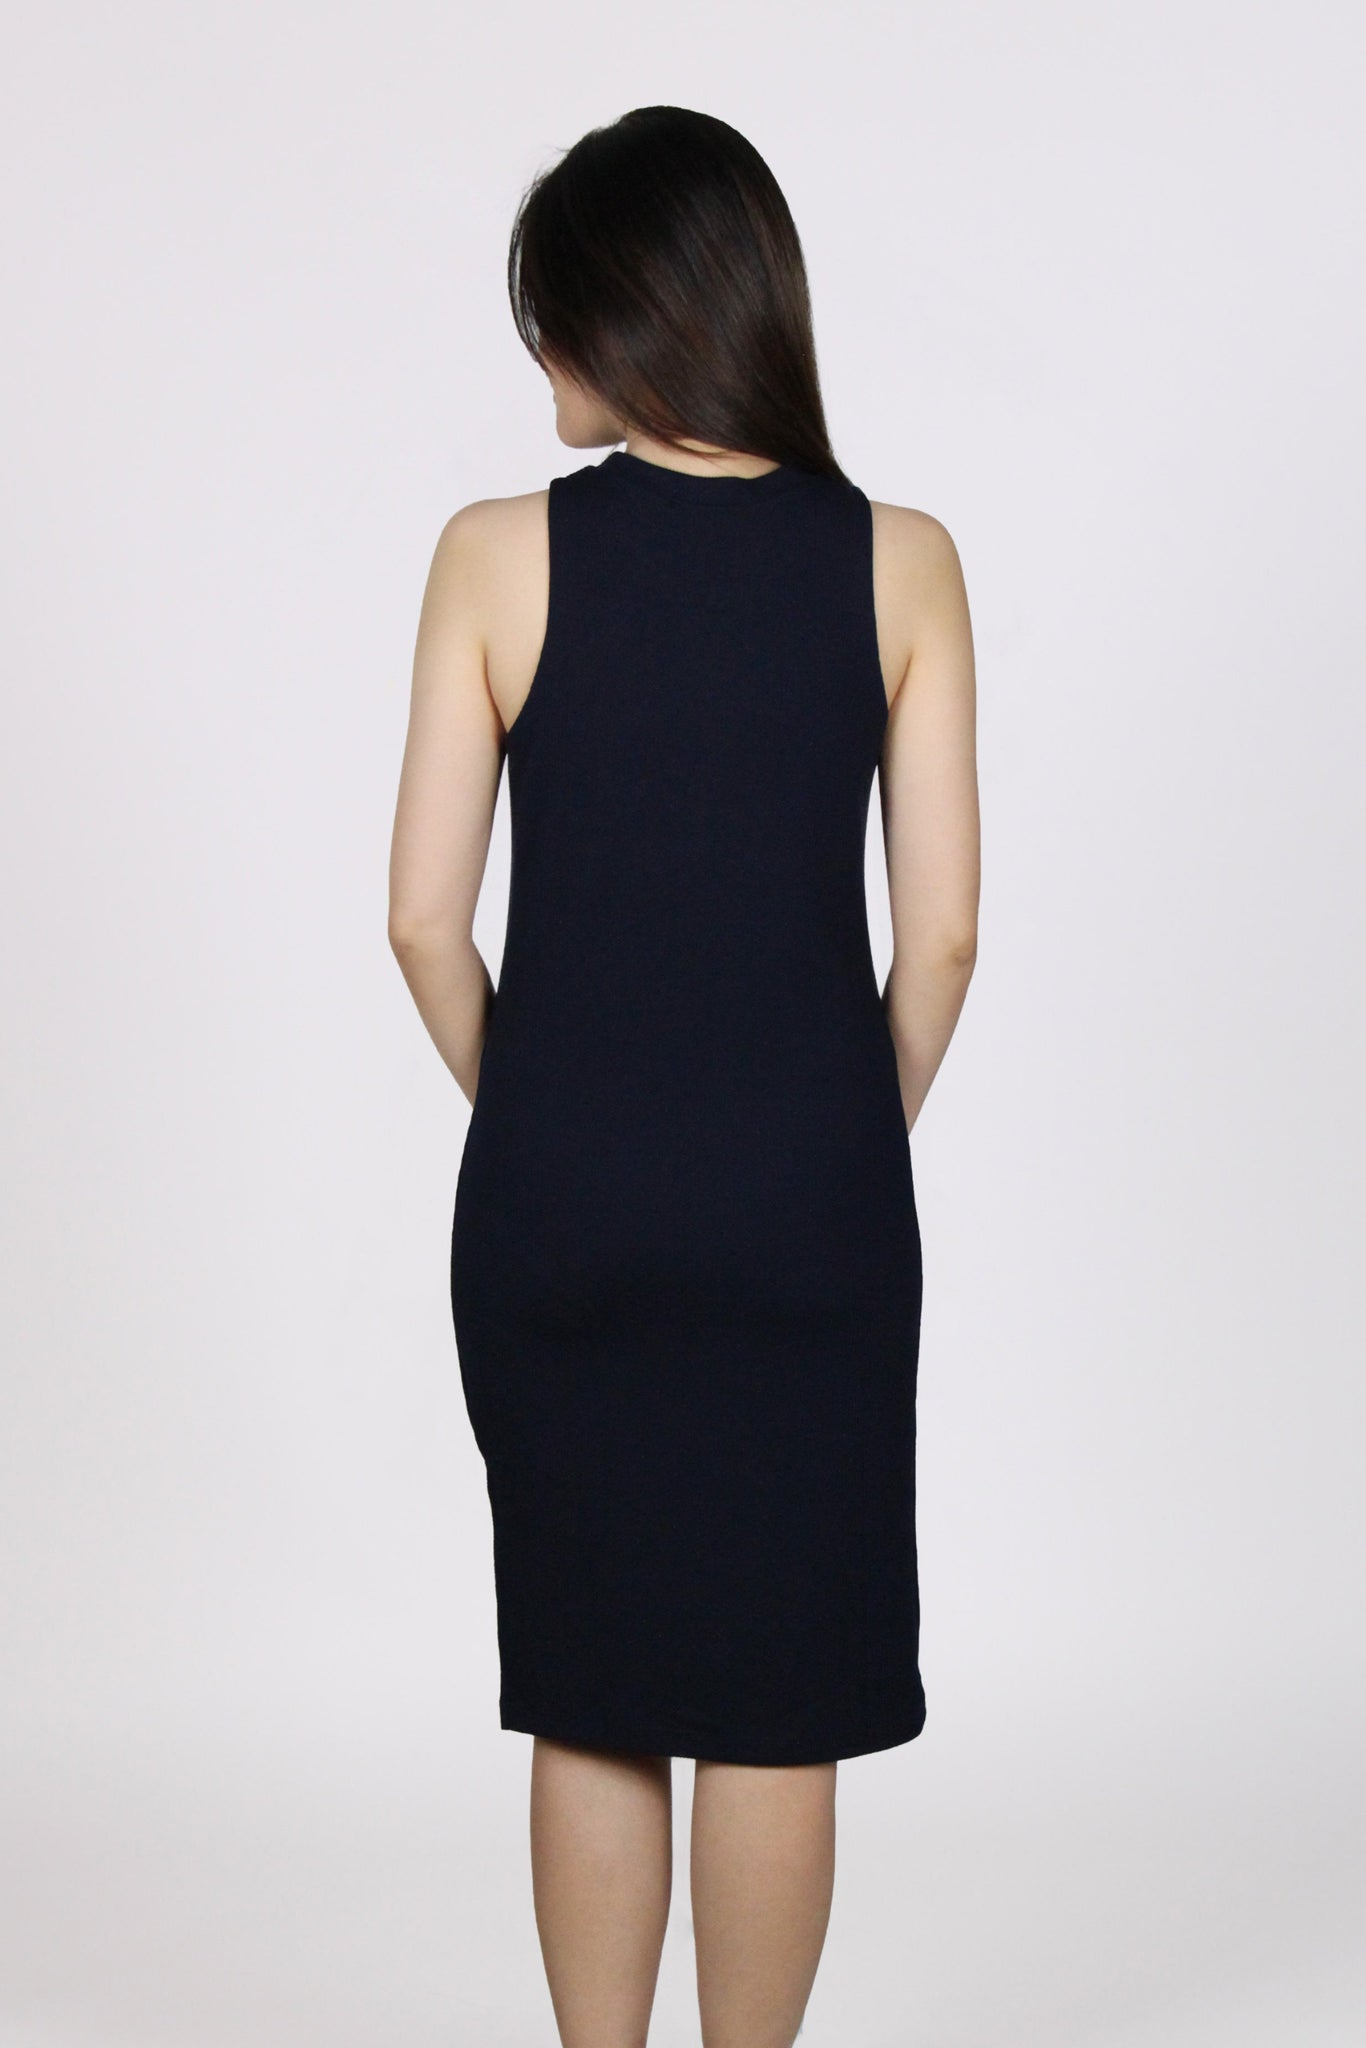 Basic Side Slit Halter Dress in Navy Blue